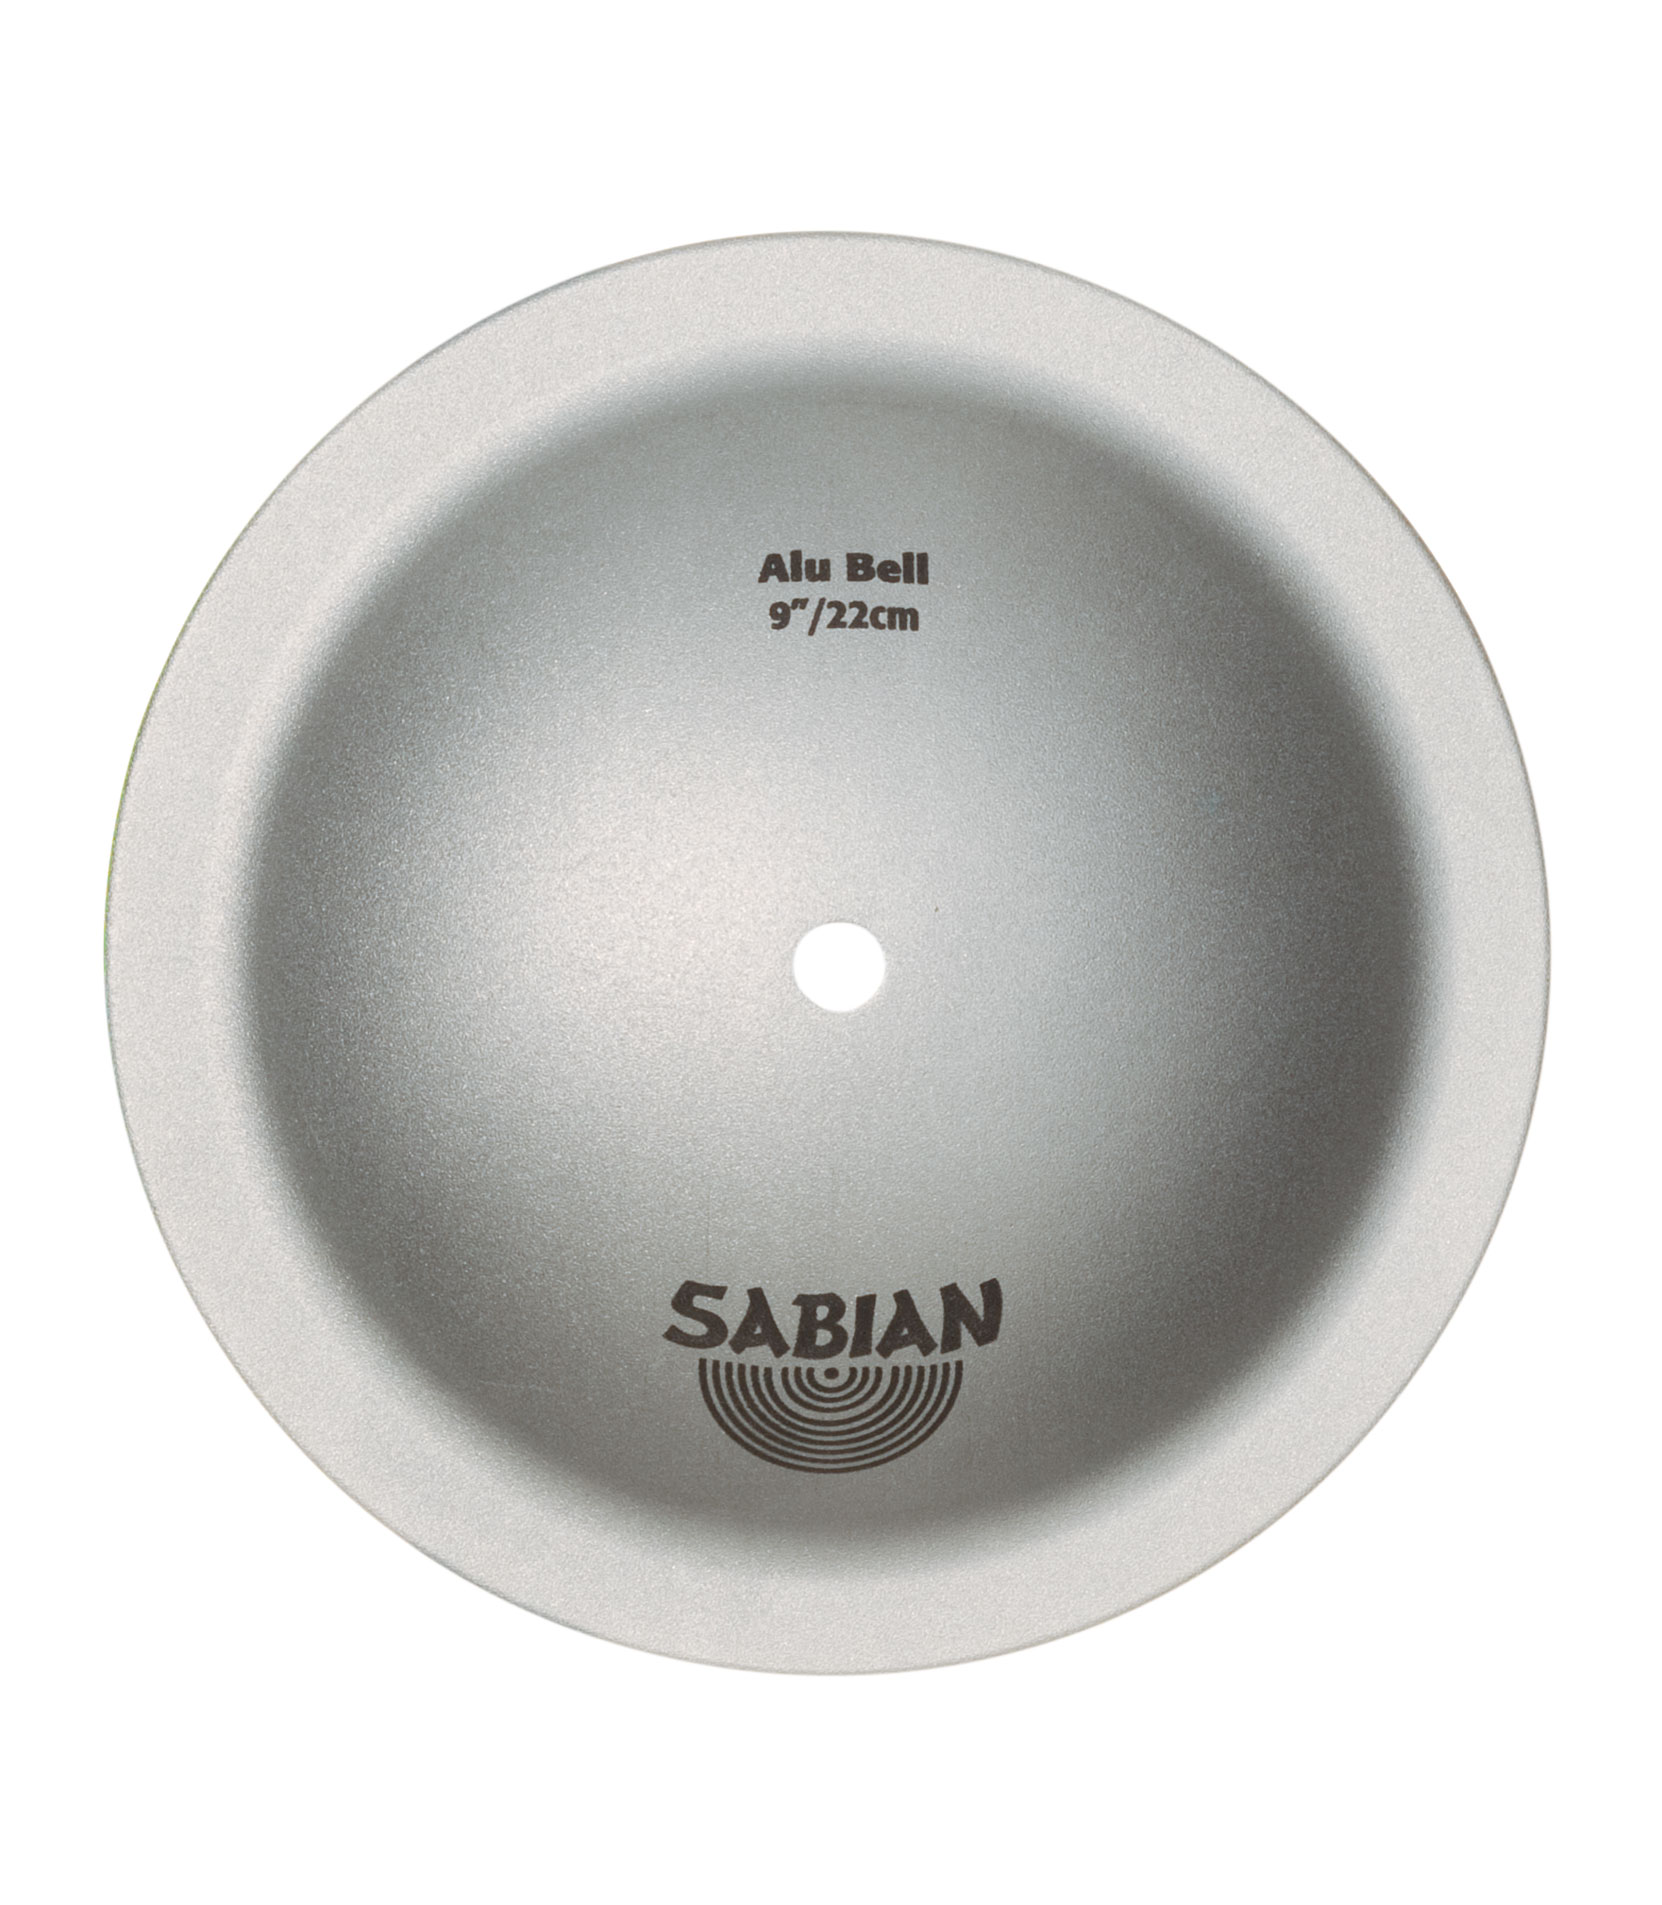 Sabian - 9 Alu Bell - Melody House Musical Instruments